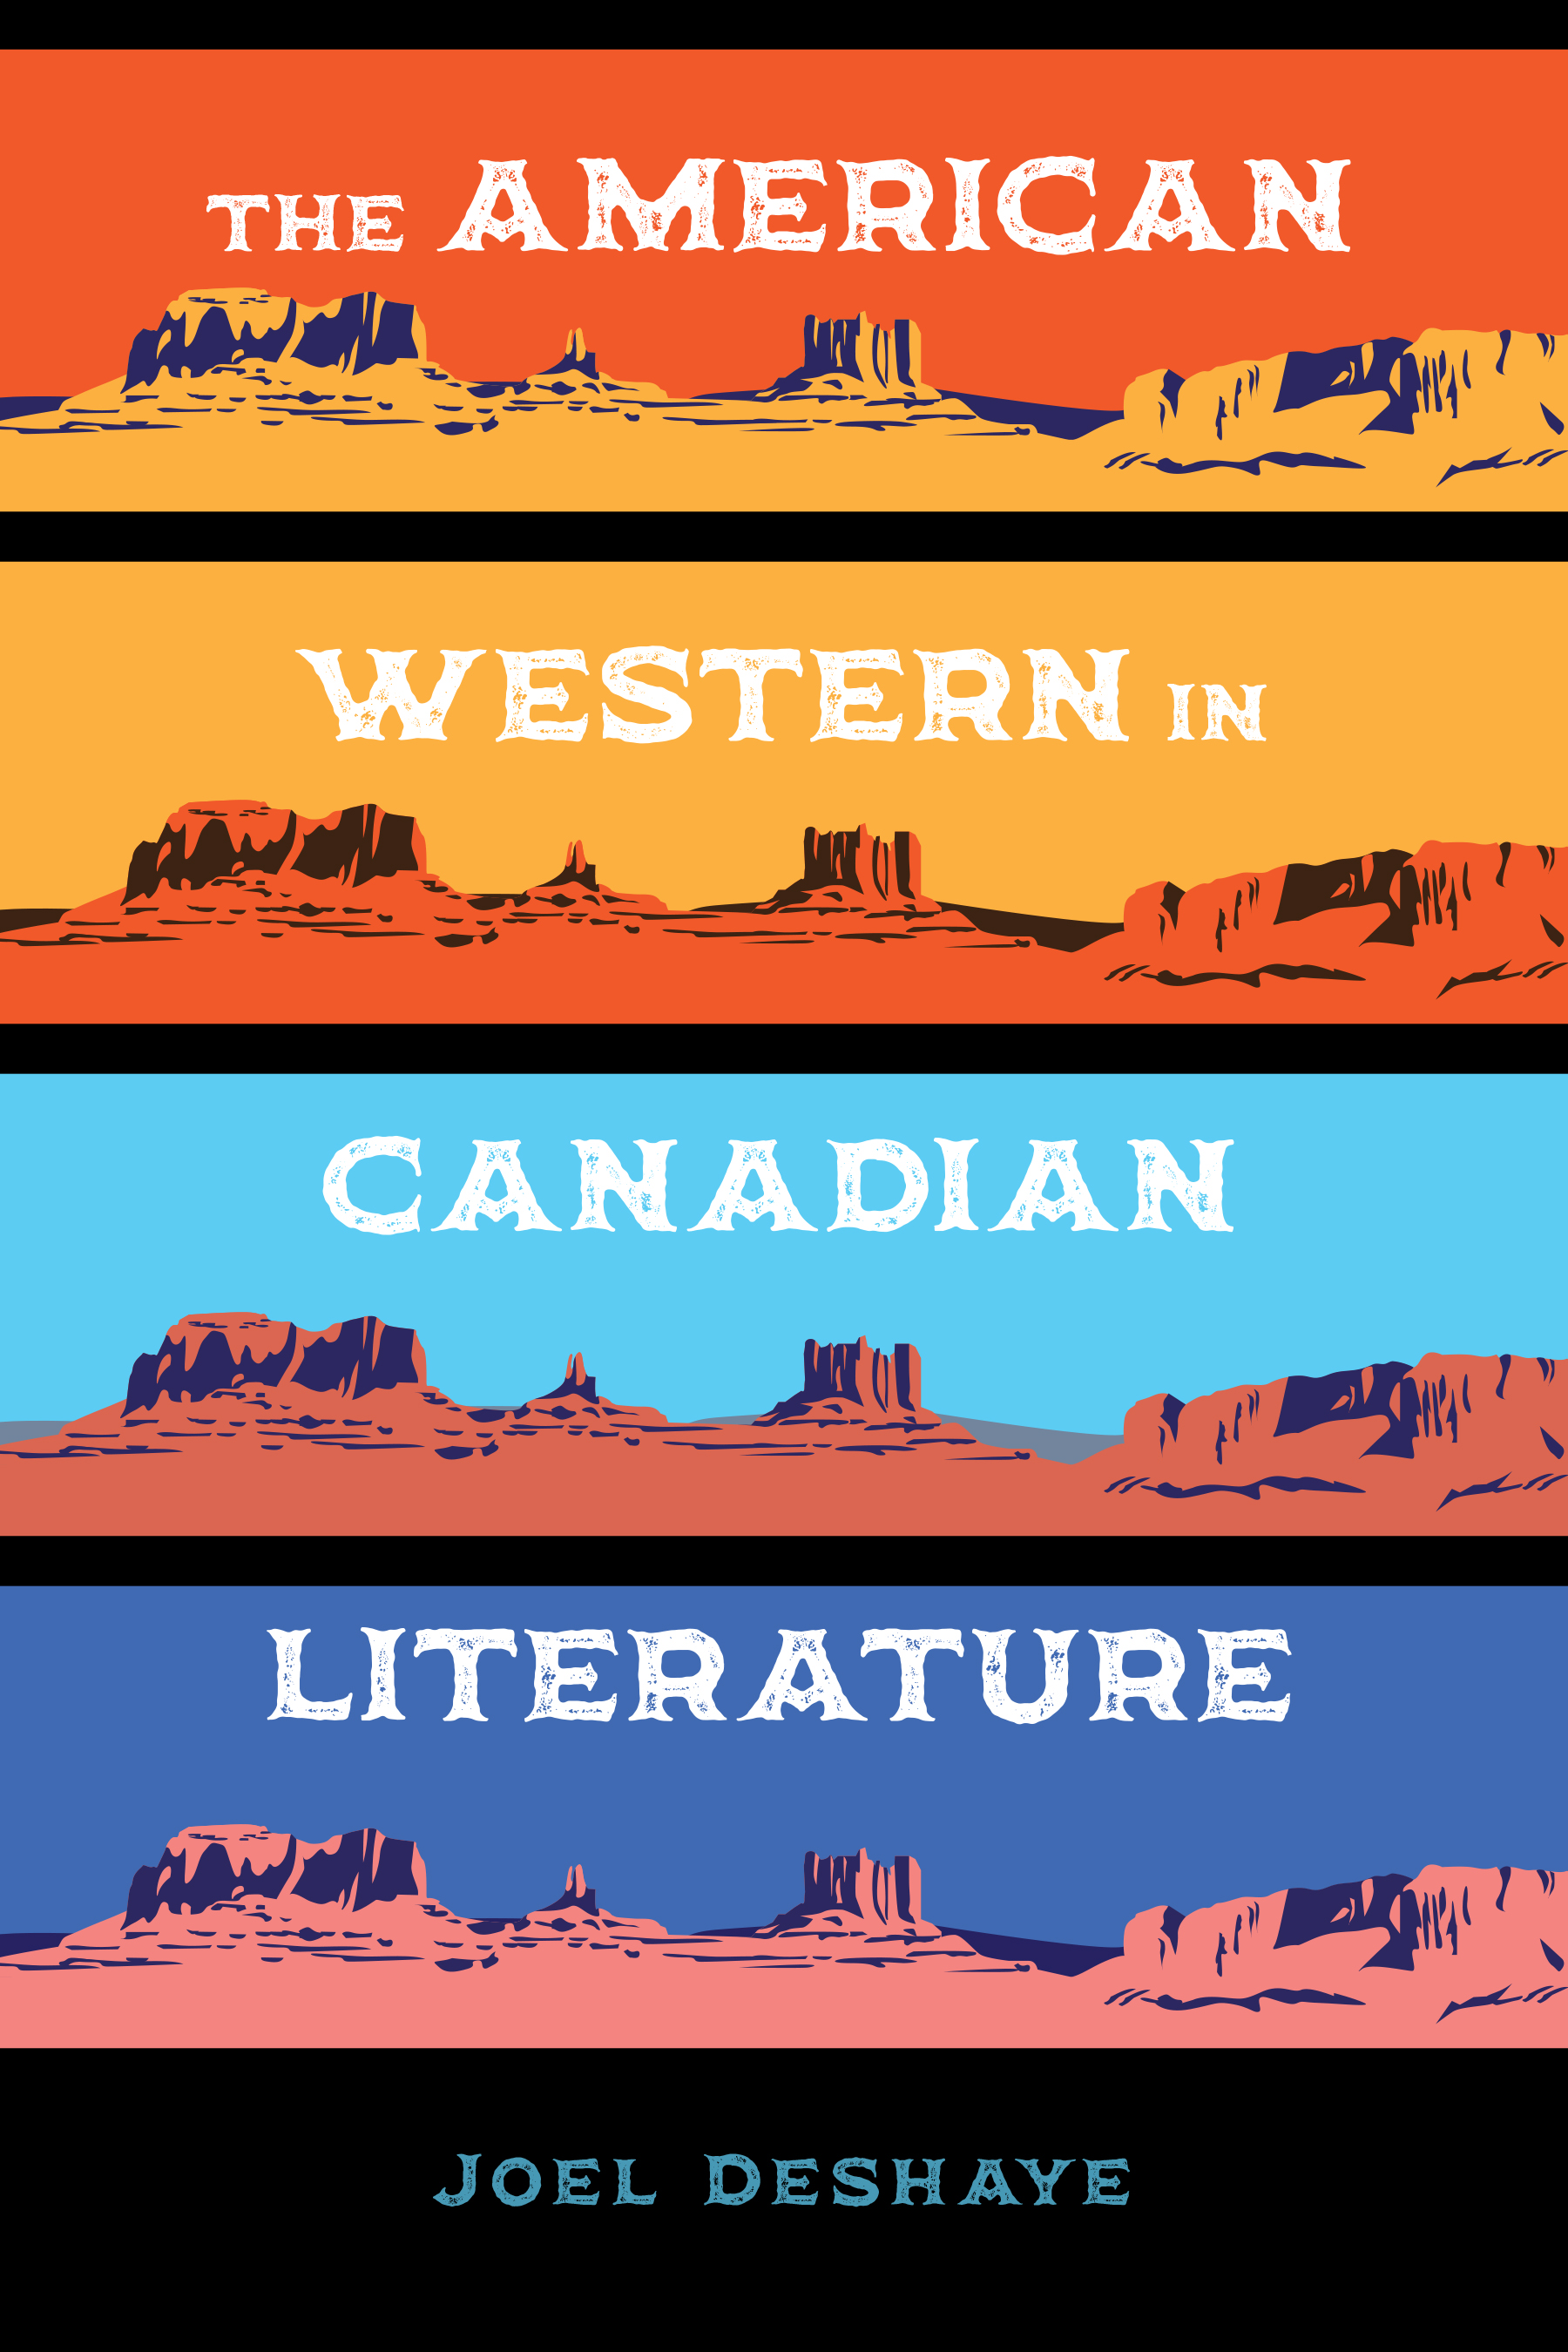 Book cover image for: American Western in Canadian Literature